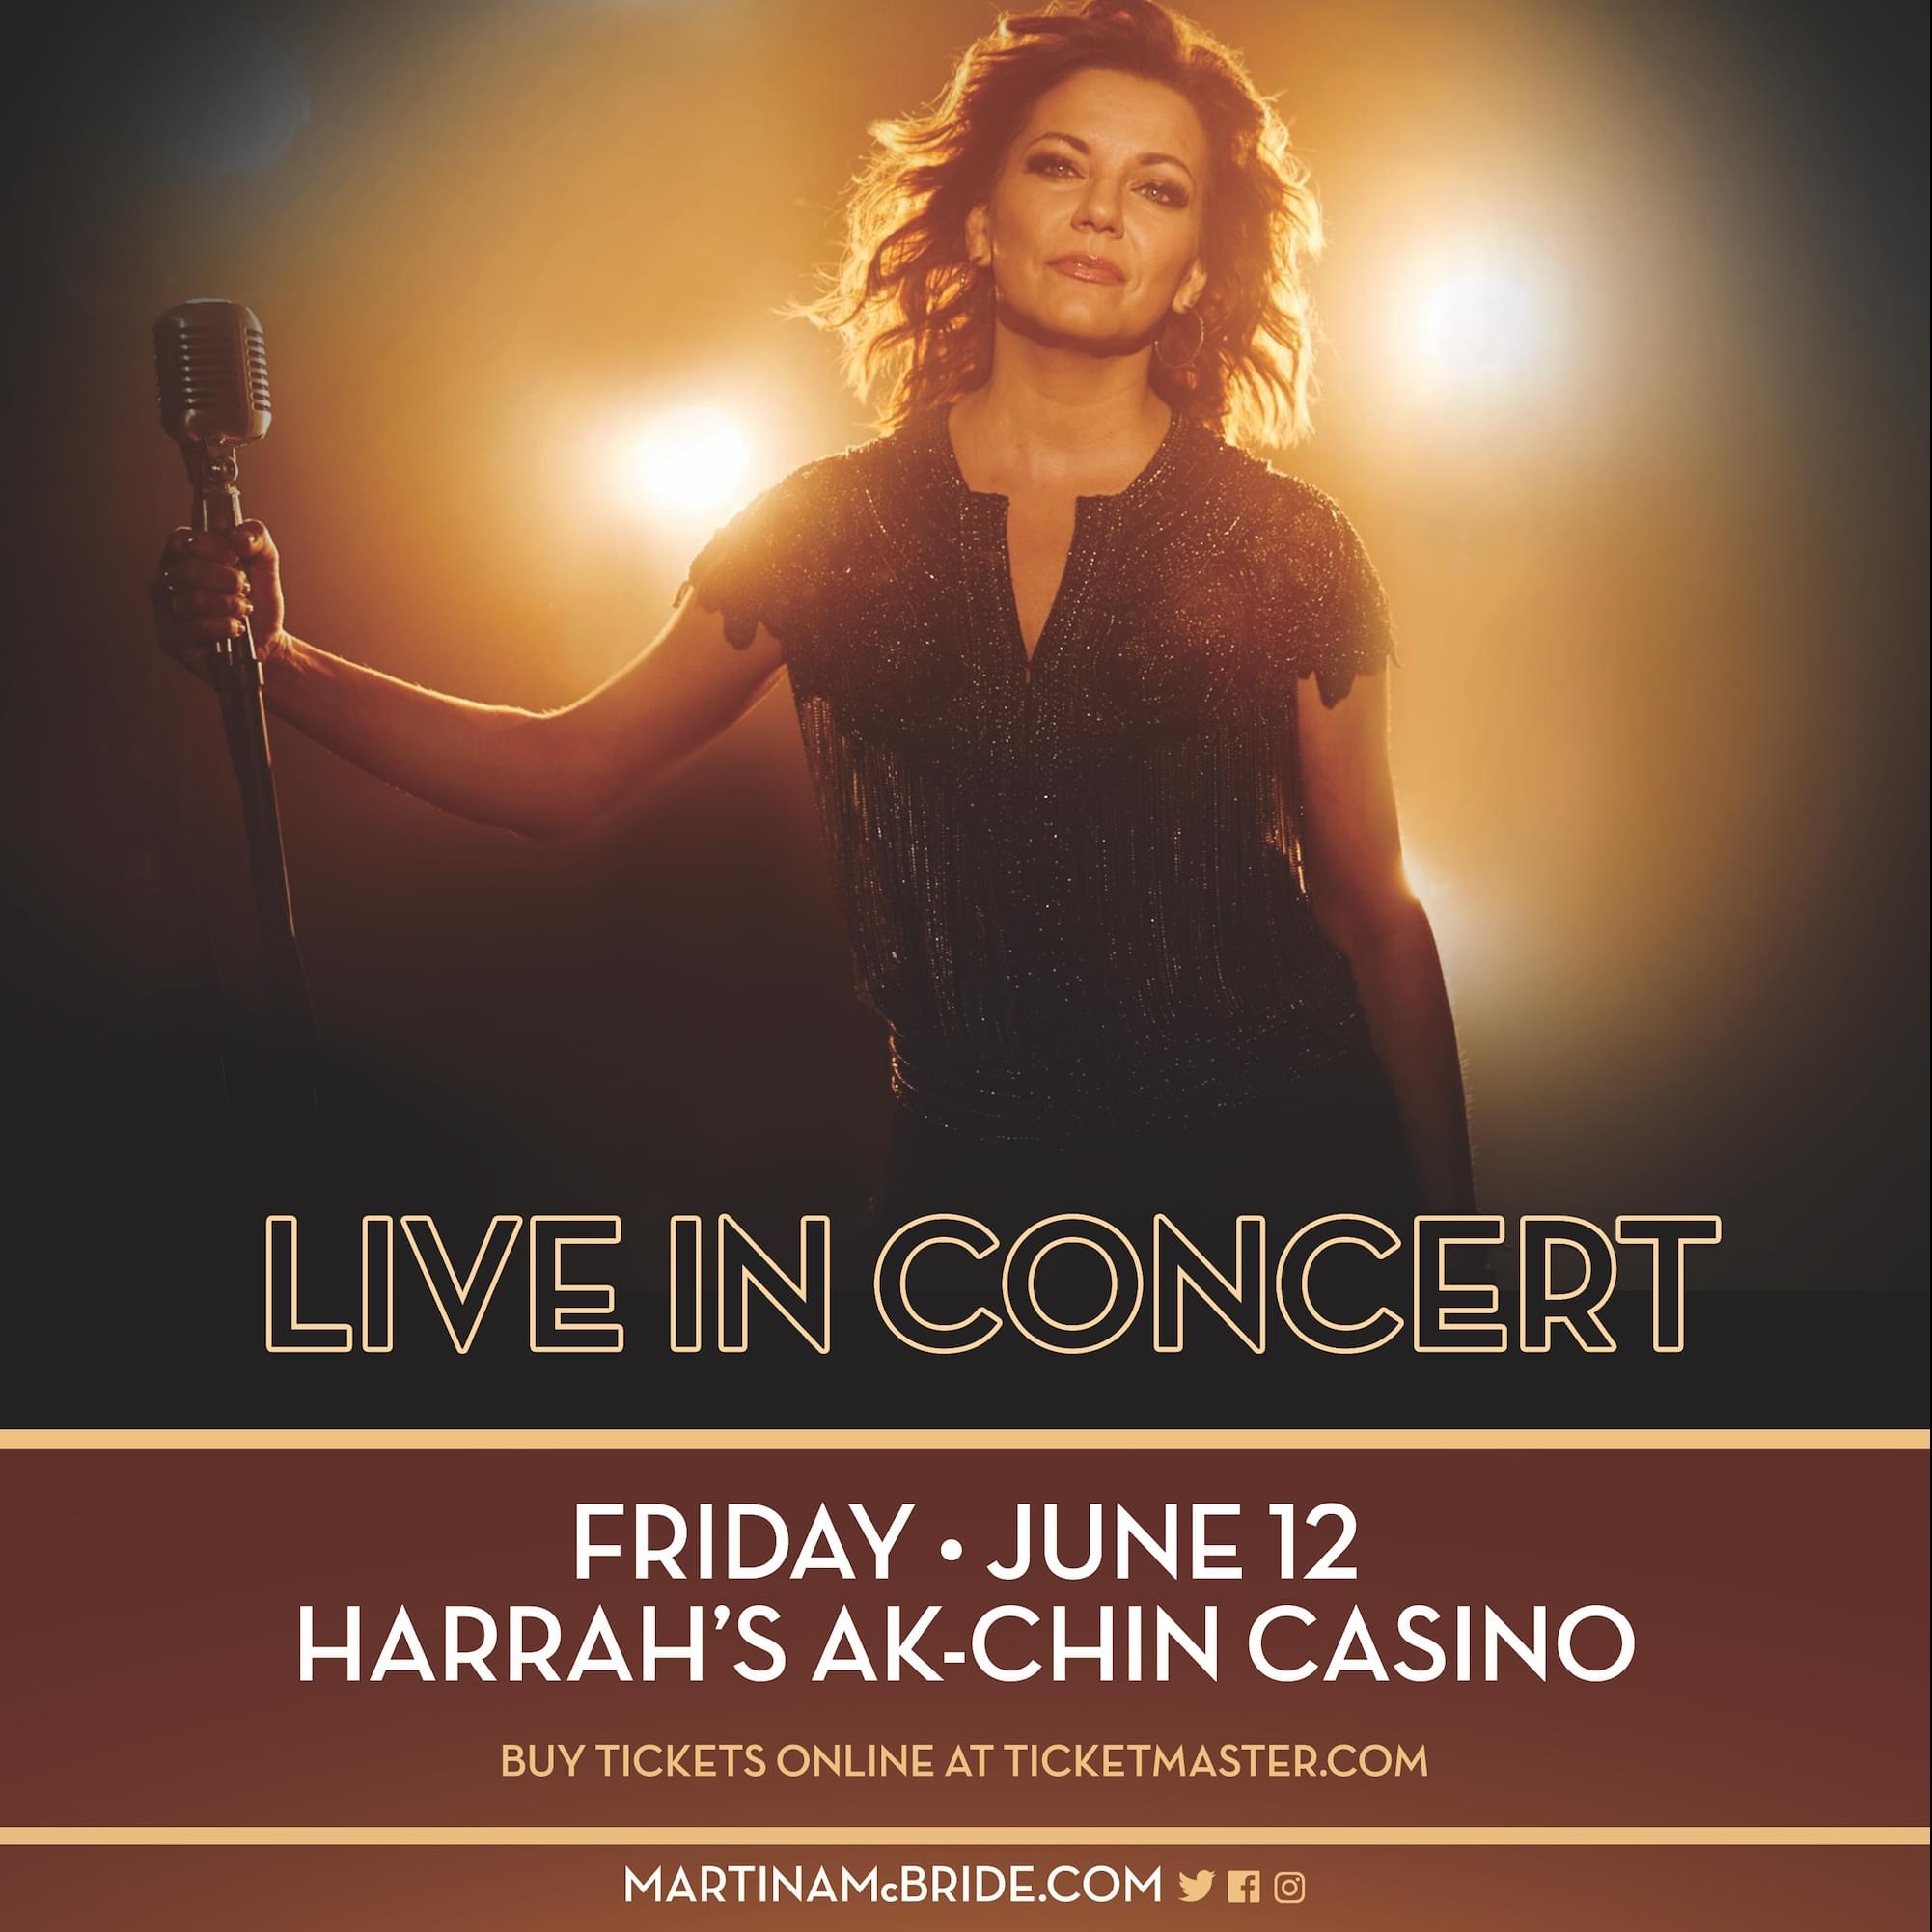 6/12: Martina McBride at Harrah's Ak-Chin